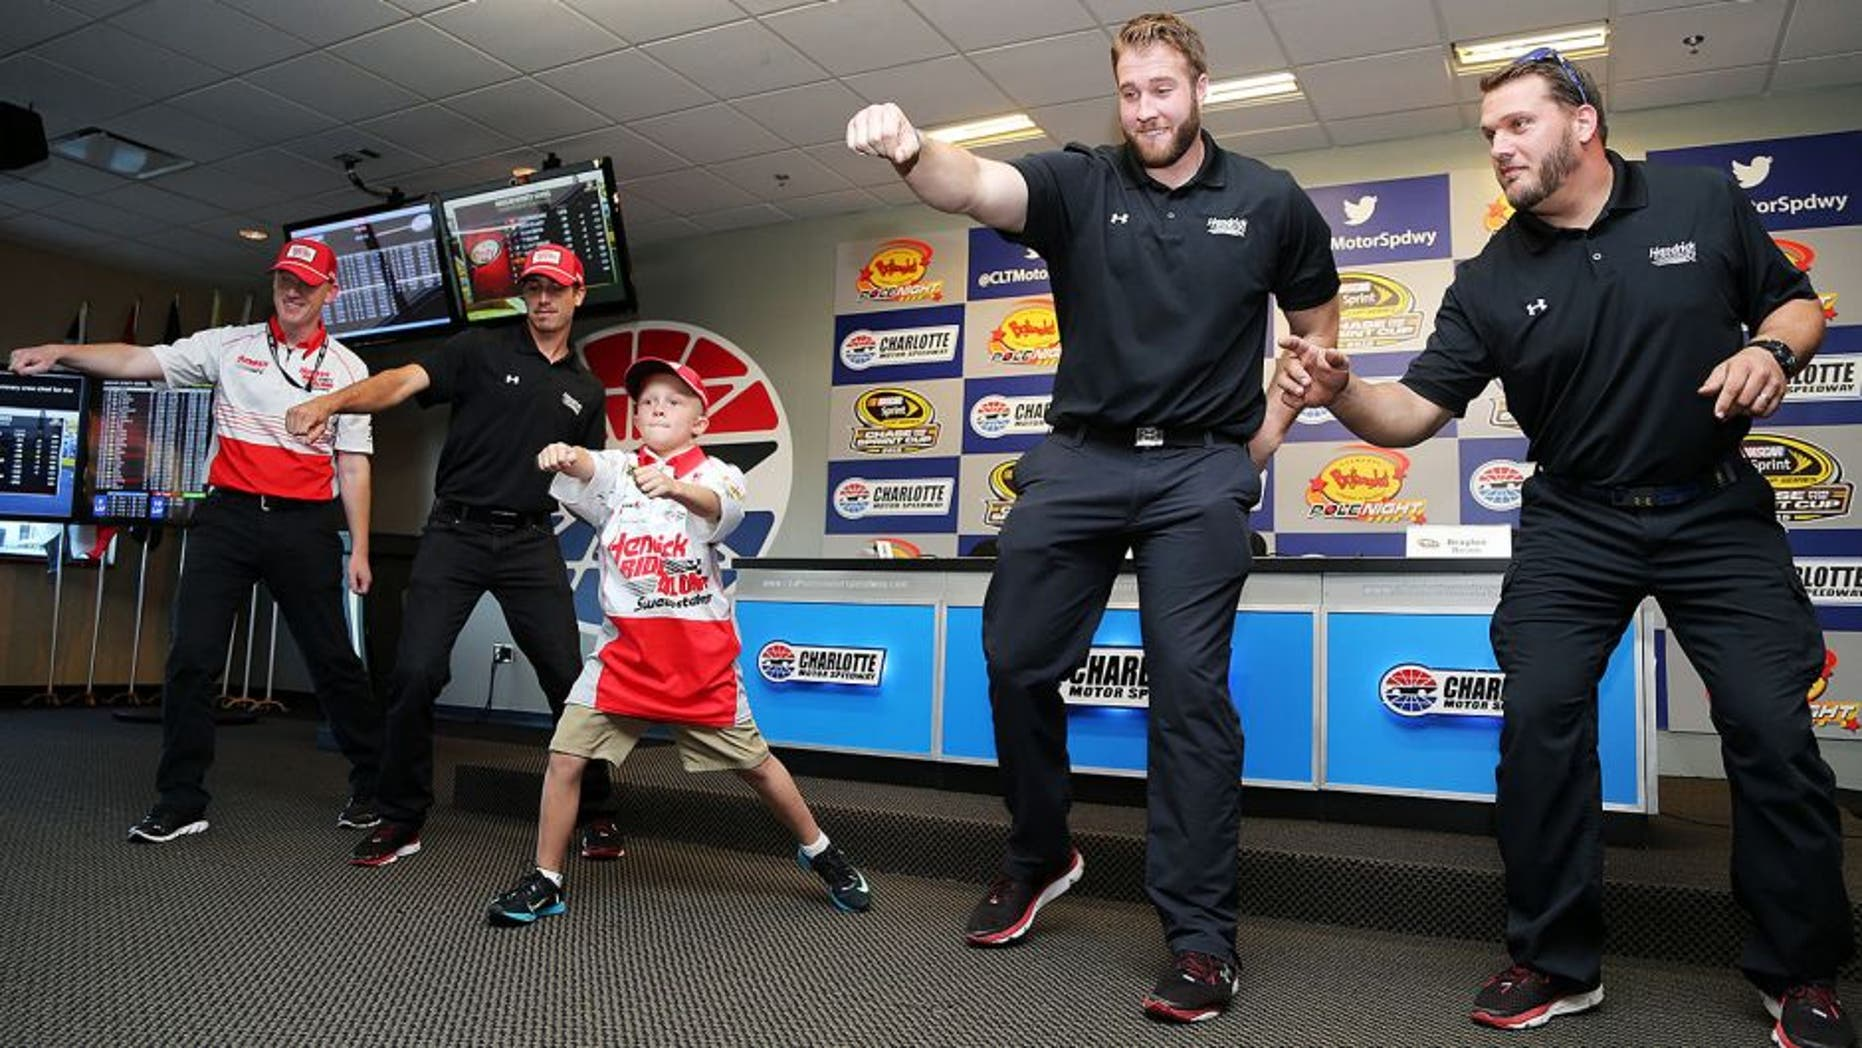 CHARLOTTE, NC - OCTOBER 08: Crew chief for Kasey Kahne, driver of the #5 HendrickRideAlong.com Chevrolet, Keith Rodden (L), crew members and honorary crew chief Braylon Beam (C) dance during a press conference prior to qualifying for the NASCAR Sprint Cup Series Bank of America 500 at Charlotte Motor Speedway on October 8, 2015 in Charlotte, North Carolina. (Photo by Jerry Markland/Getty Images)